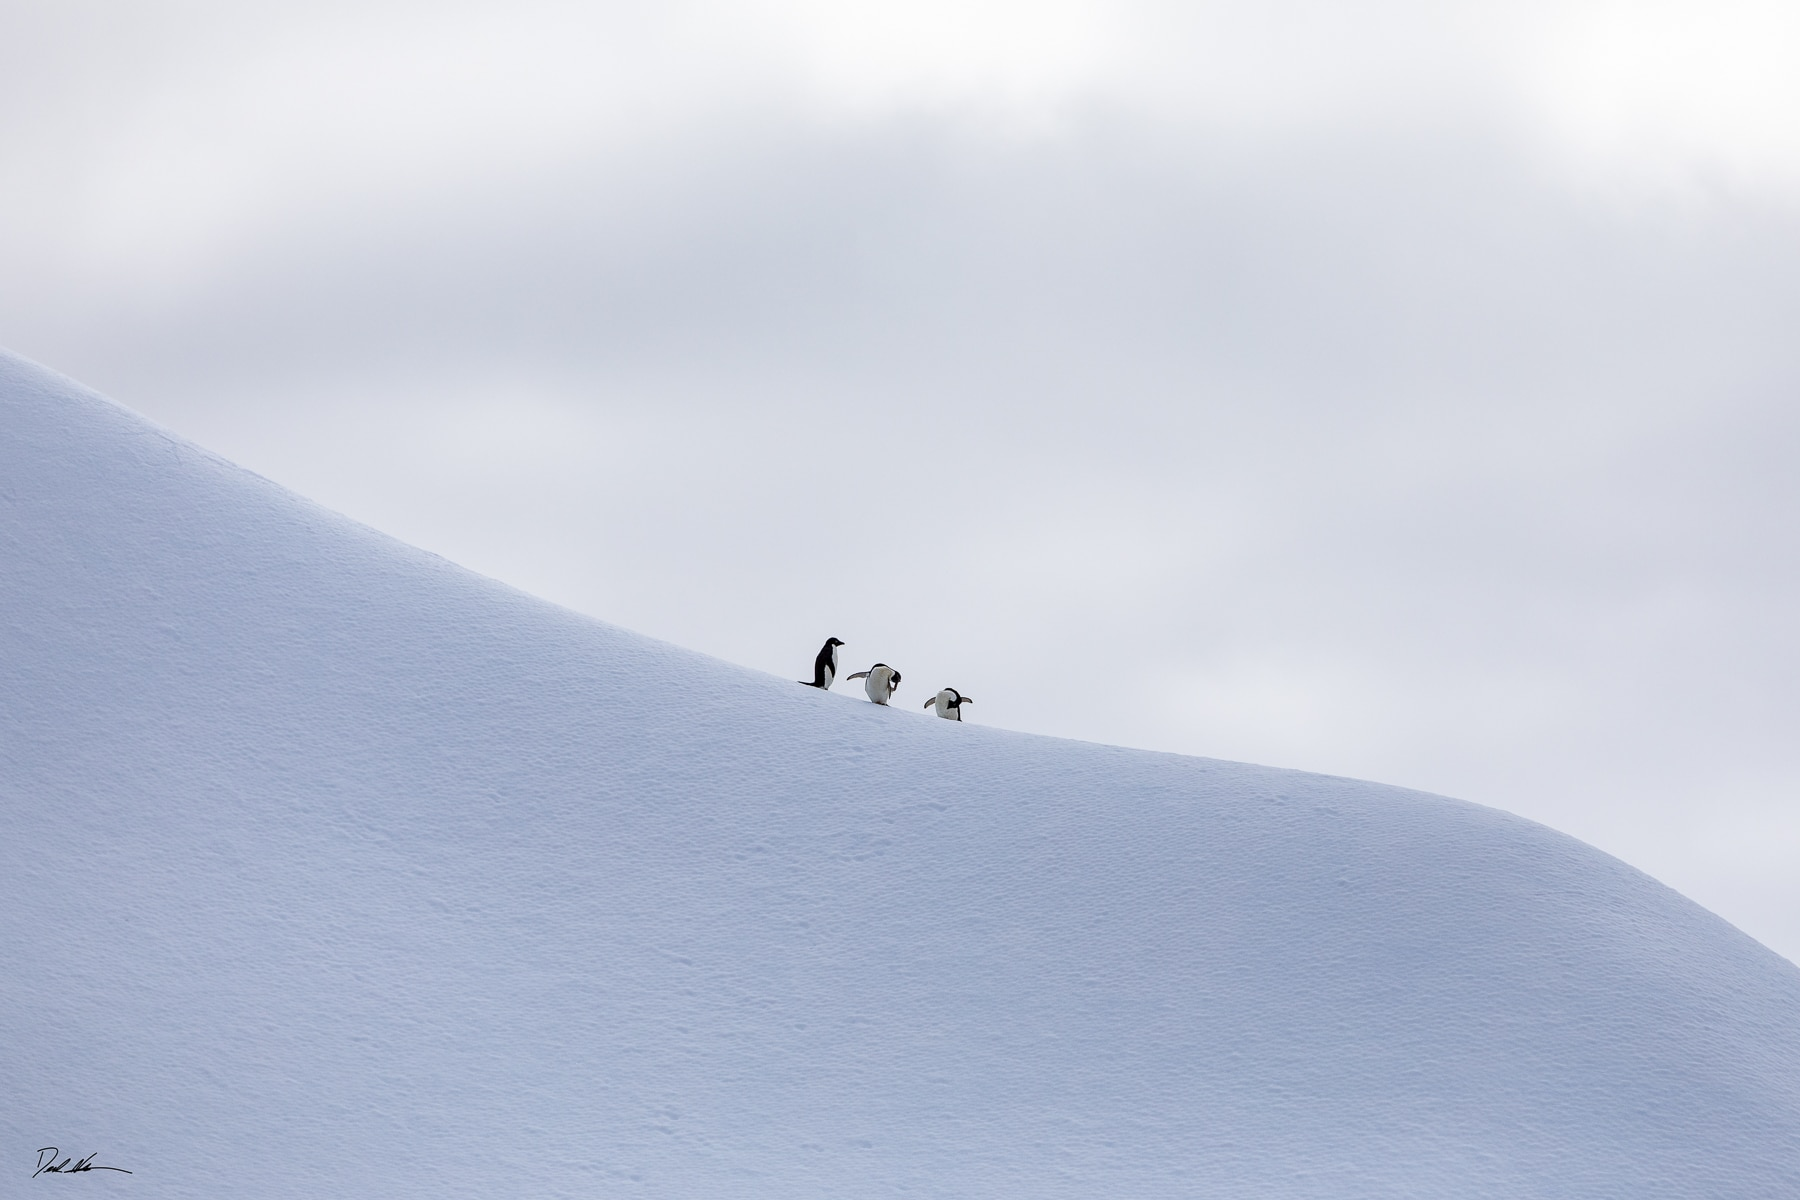 3 penguins in the distance